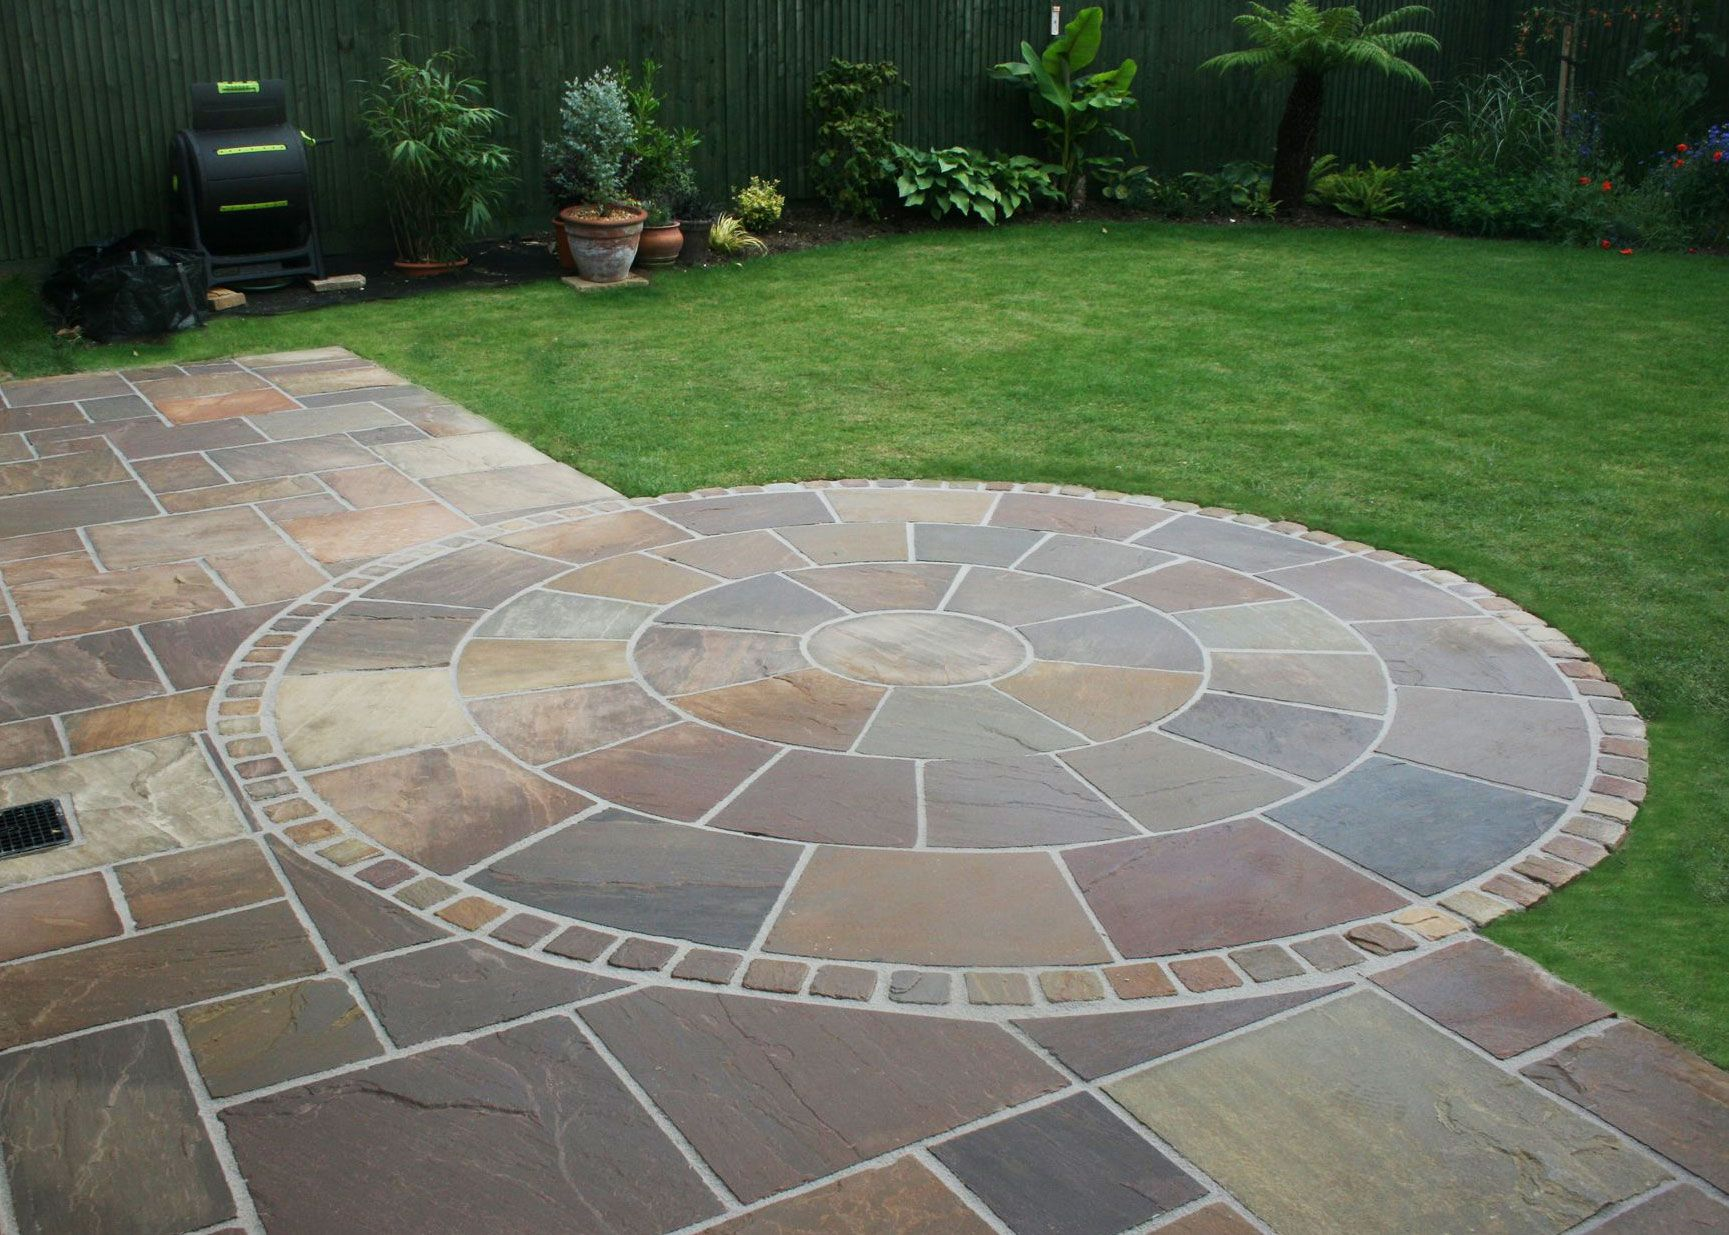 Decorative Indian Sandstone Circles Are A Striking Feature Piece To Any Patio Or Laid As A Feature In A G With Images Patio Garden Design Small Garden Design Sloped Garden